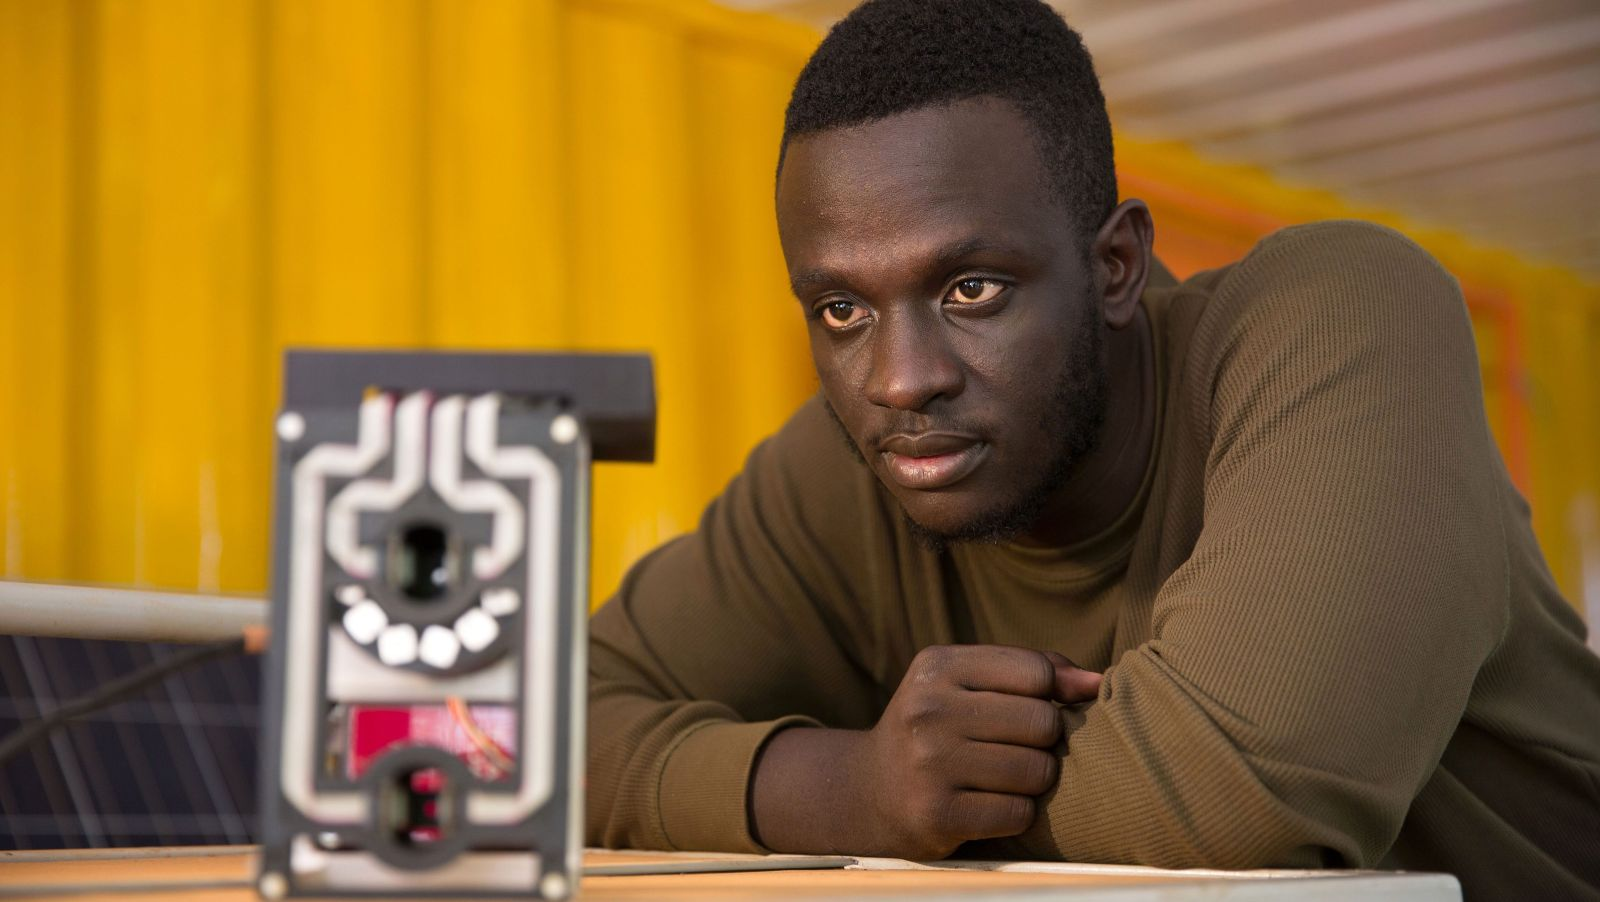 Ugandan Engineer Brian Gitta Awarded Africa's Prestigious Innovation Prize For His Bloodless Malaria Test Invention